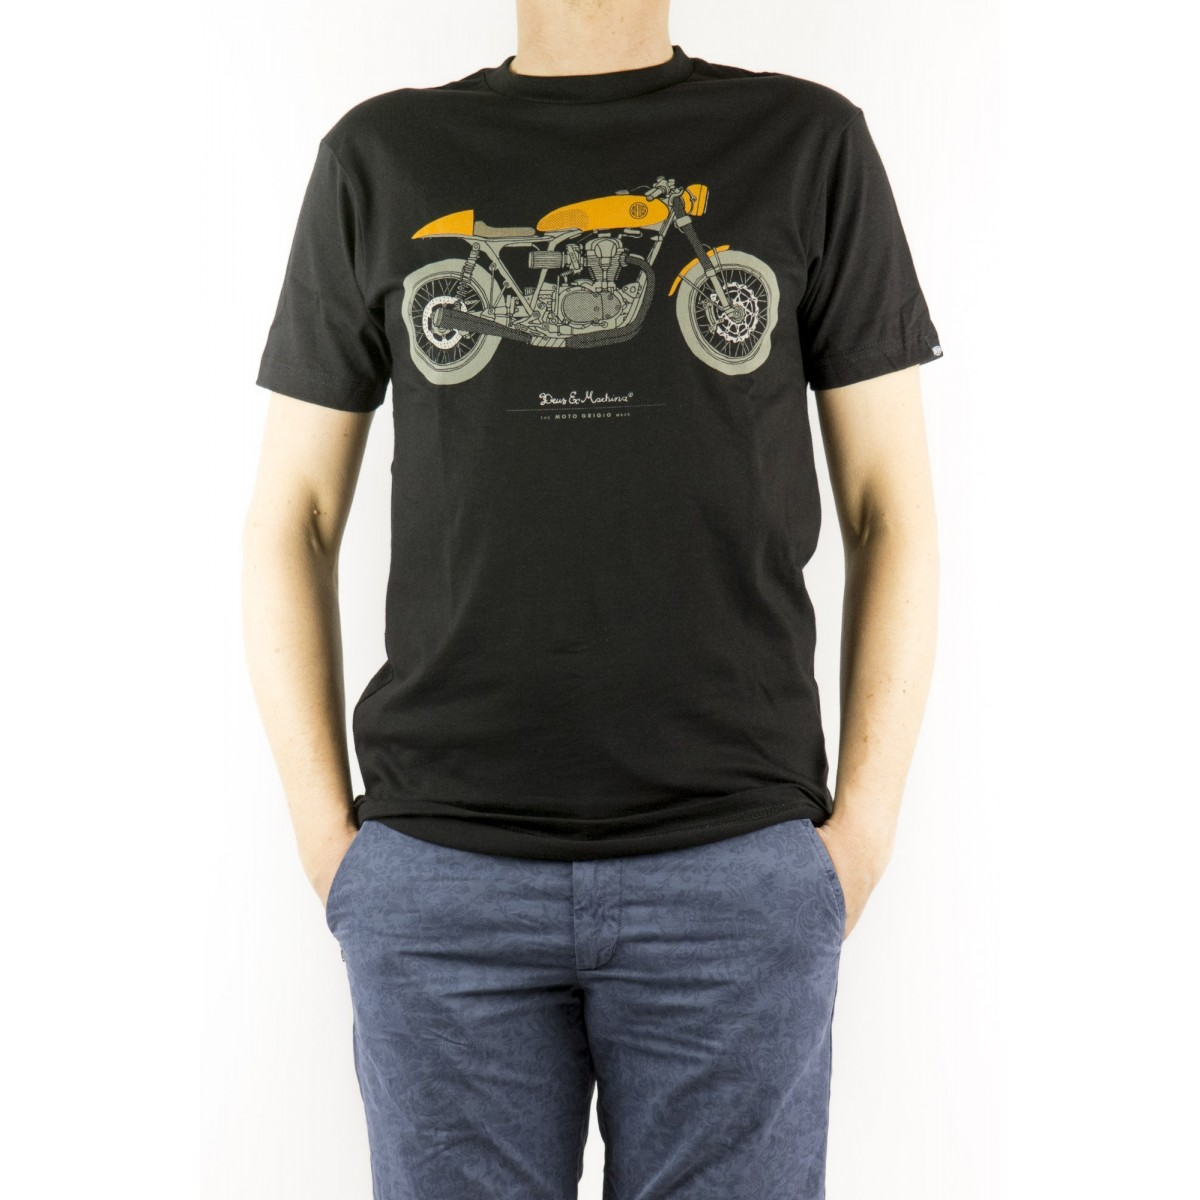 T-Shirt Deus Ex Machina - Dmw41808N